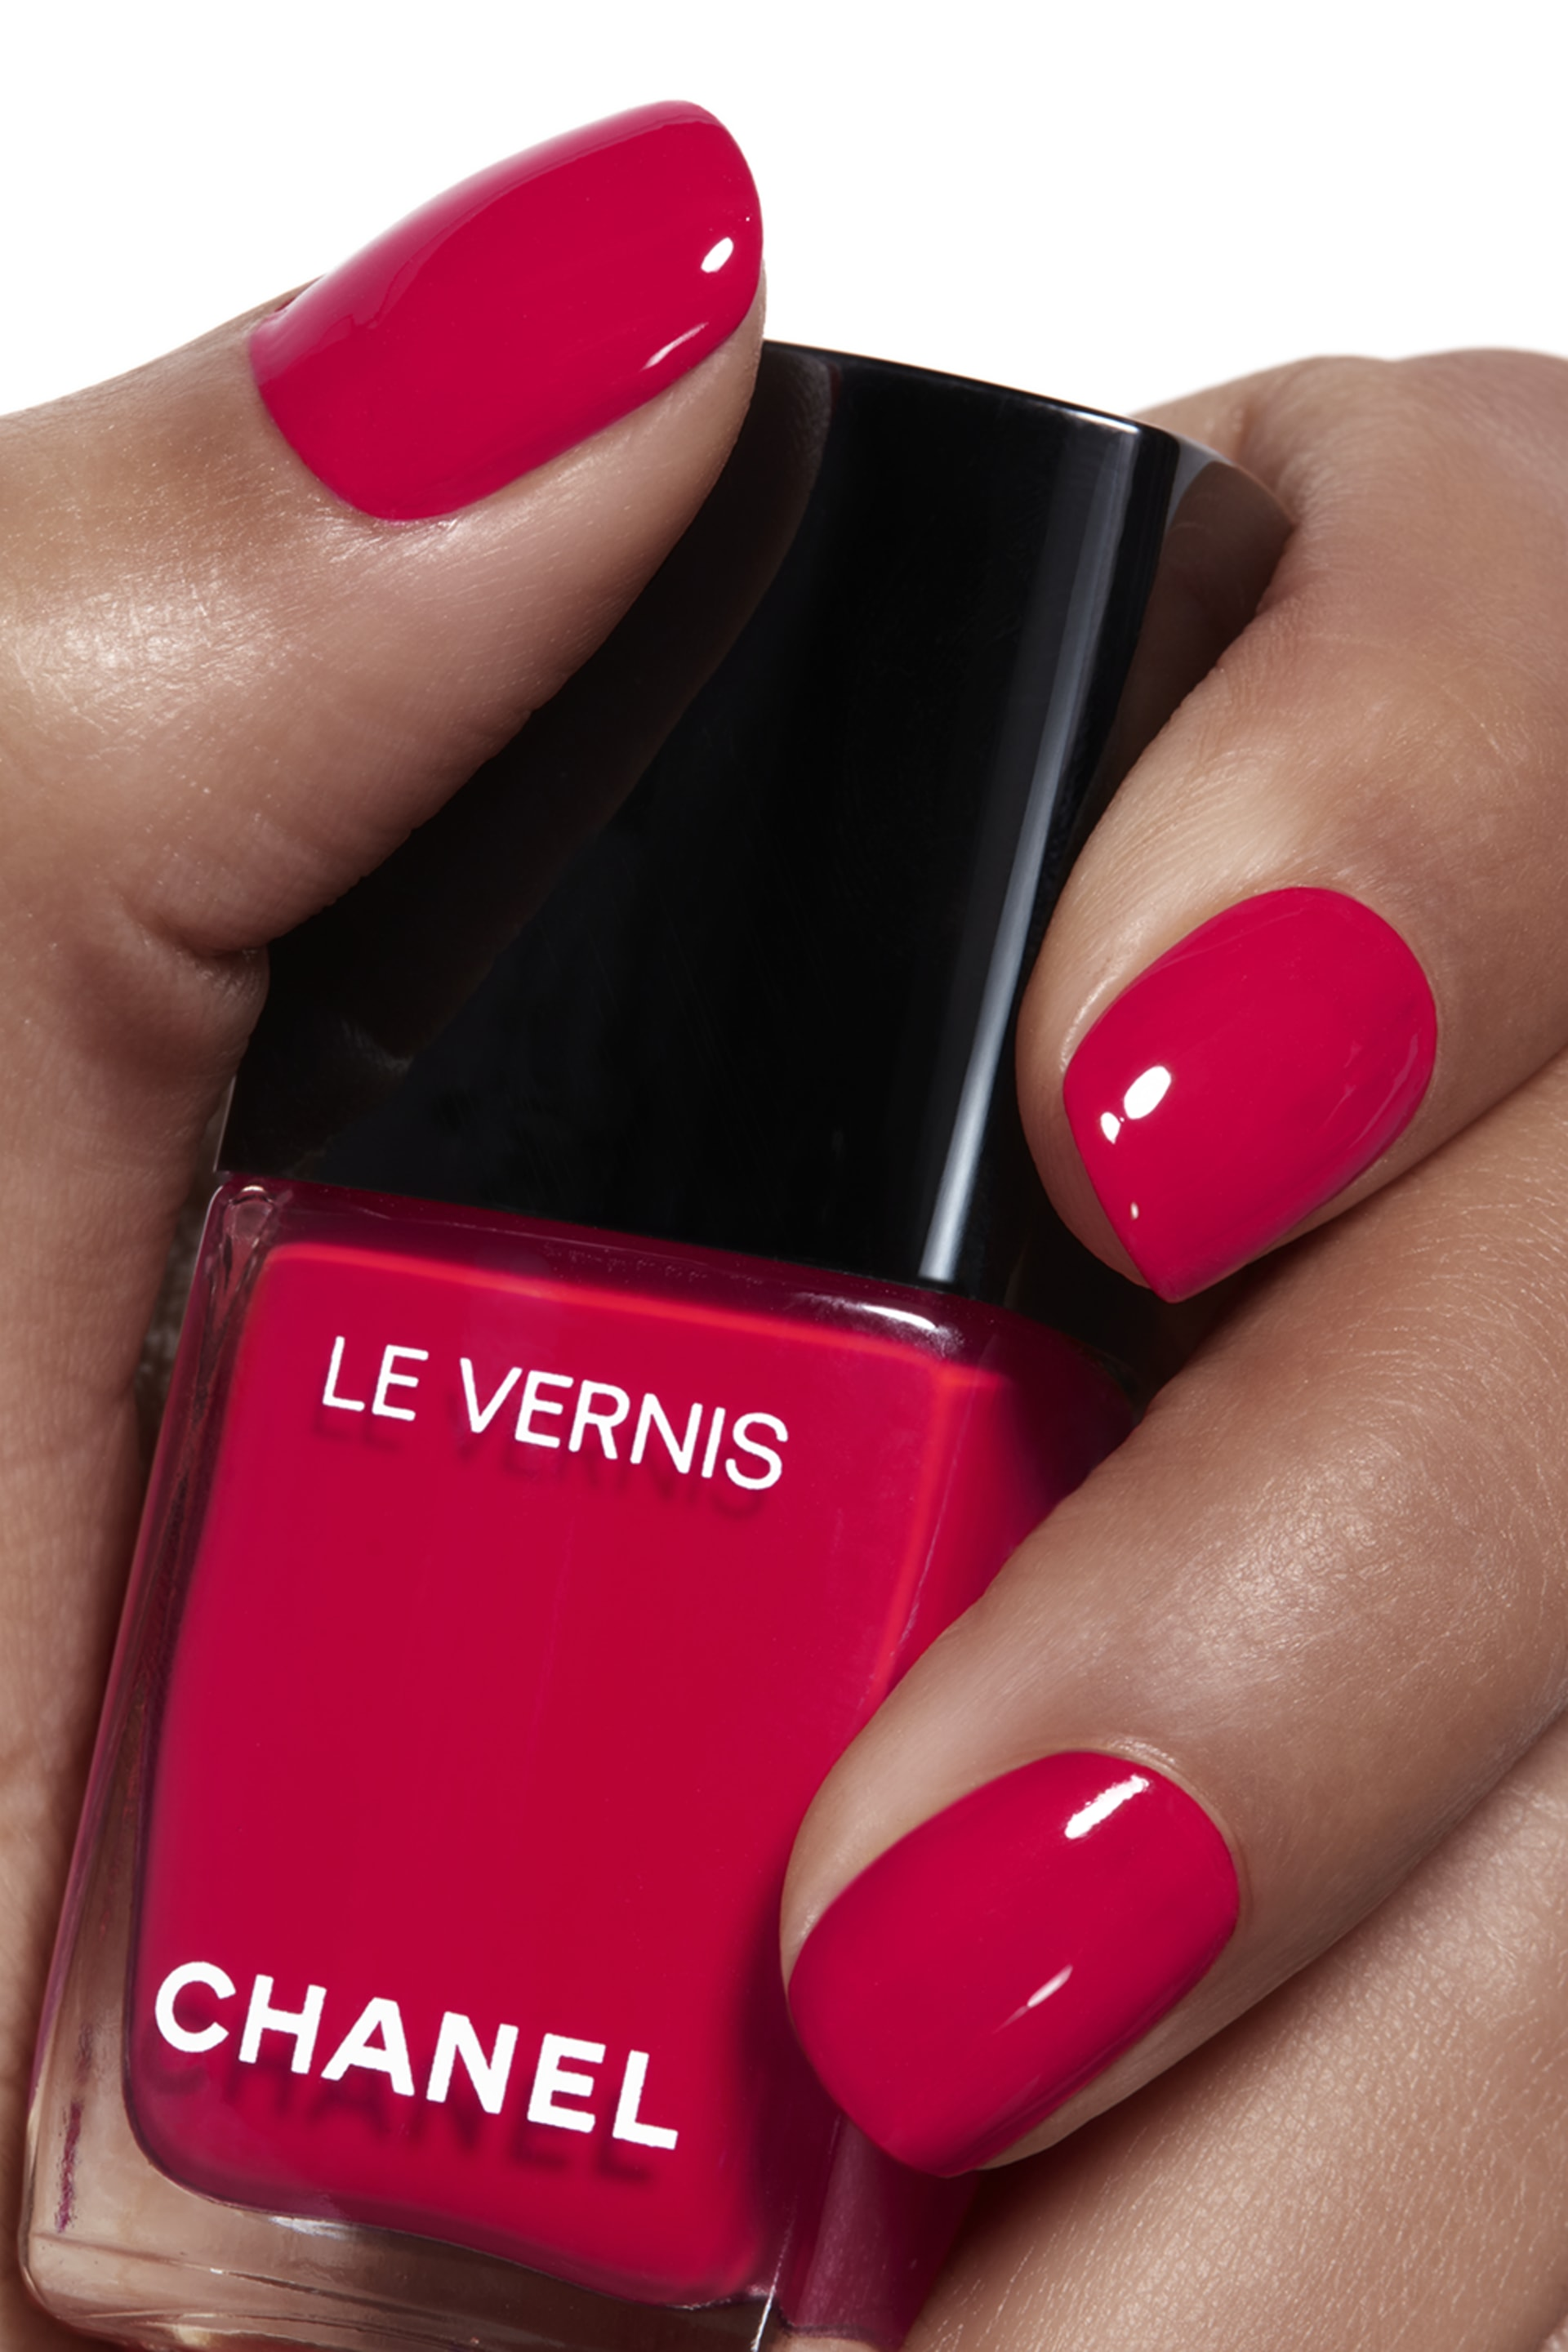 Application makeup visual 1 - LE VERNIS 626 - EXQUISITE PINK